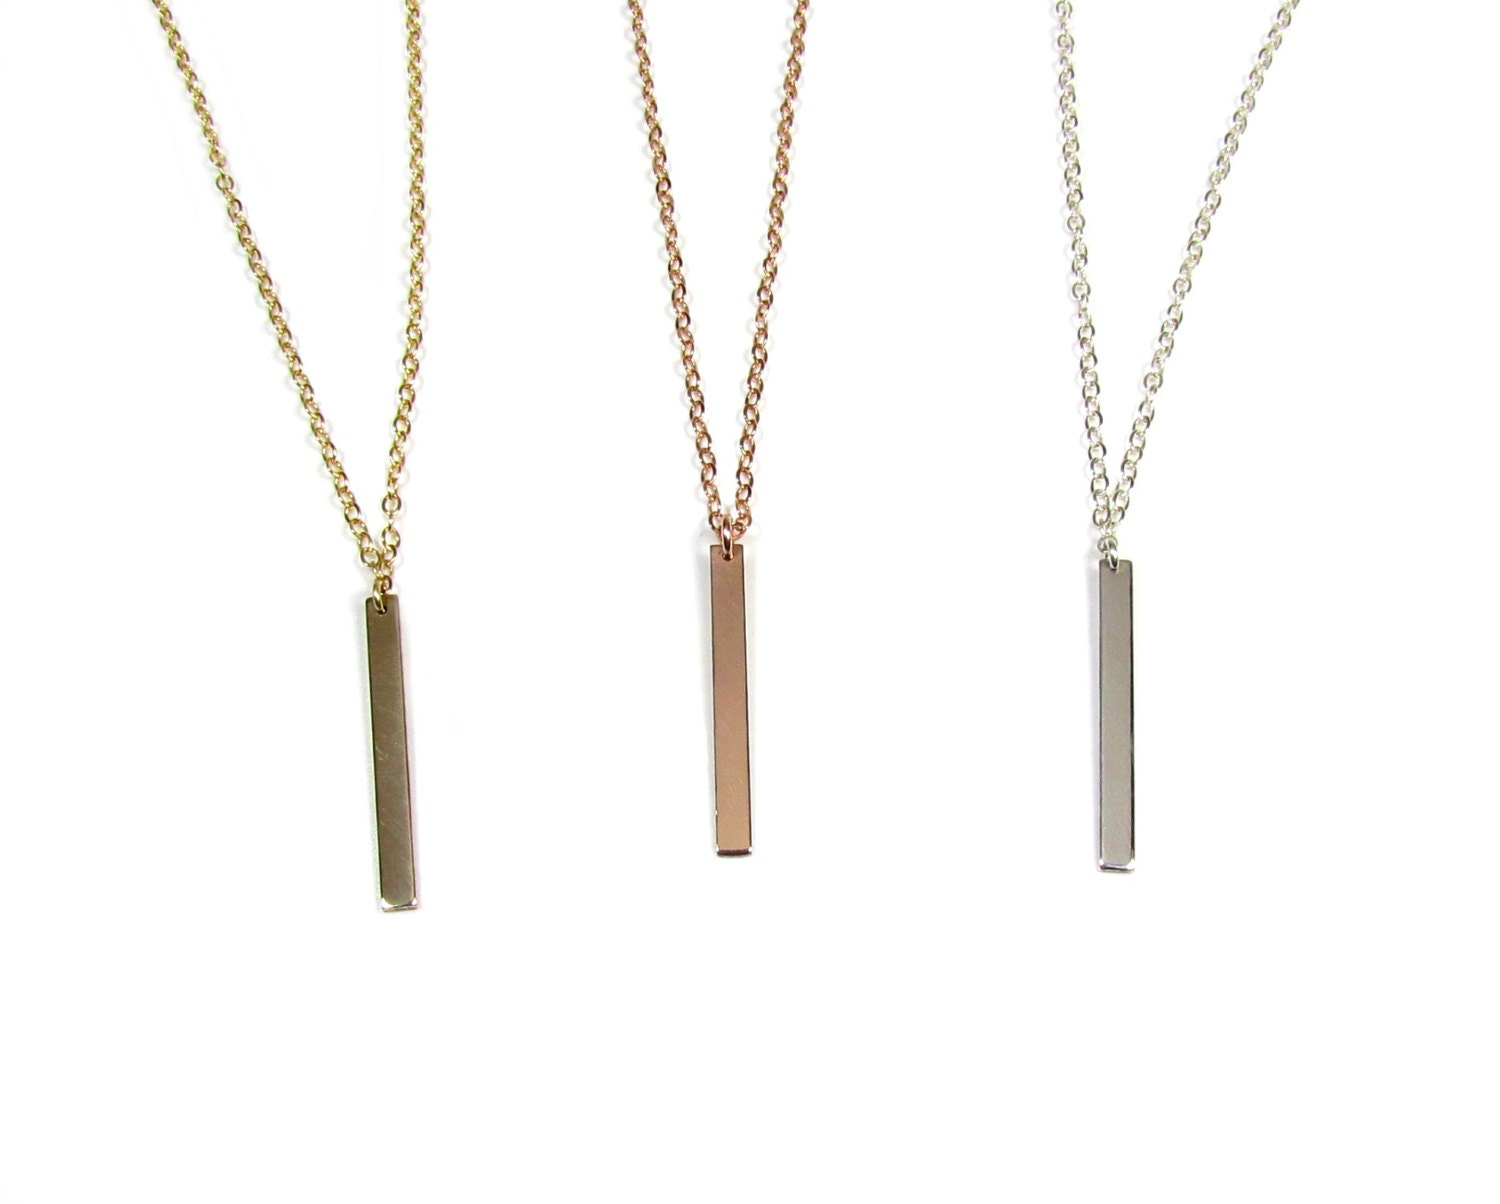 Minimal Gold Bar Necklace Vertical Bar Necklace Dangling Bar. Gem Jewelry. Effy Diamond. Black Diamond Anniversary Band. Mosaic Rings. Scottish Wedding Rings. Trillion Cut Sapphire. Rosewood Watches. Mod Engagement Rings